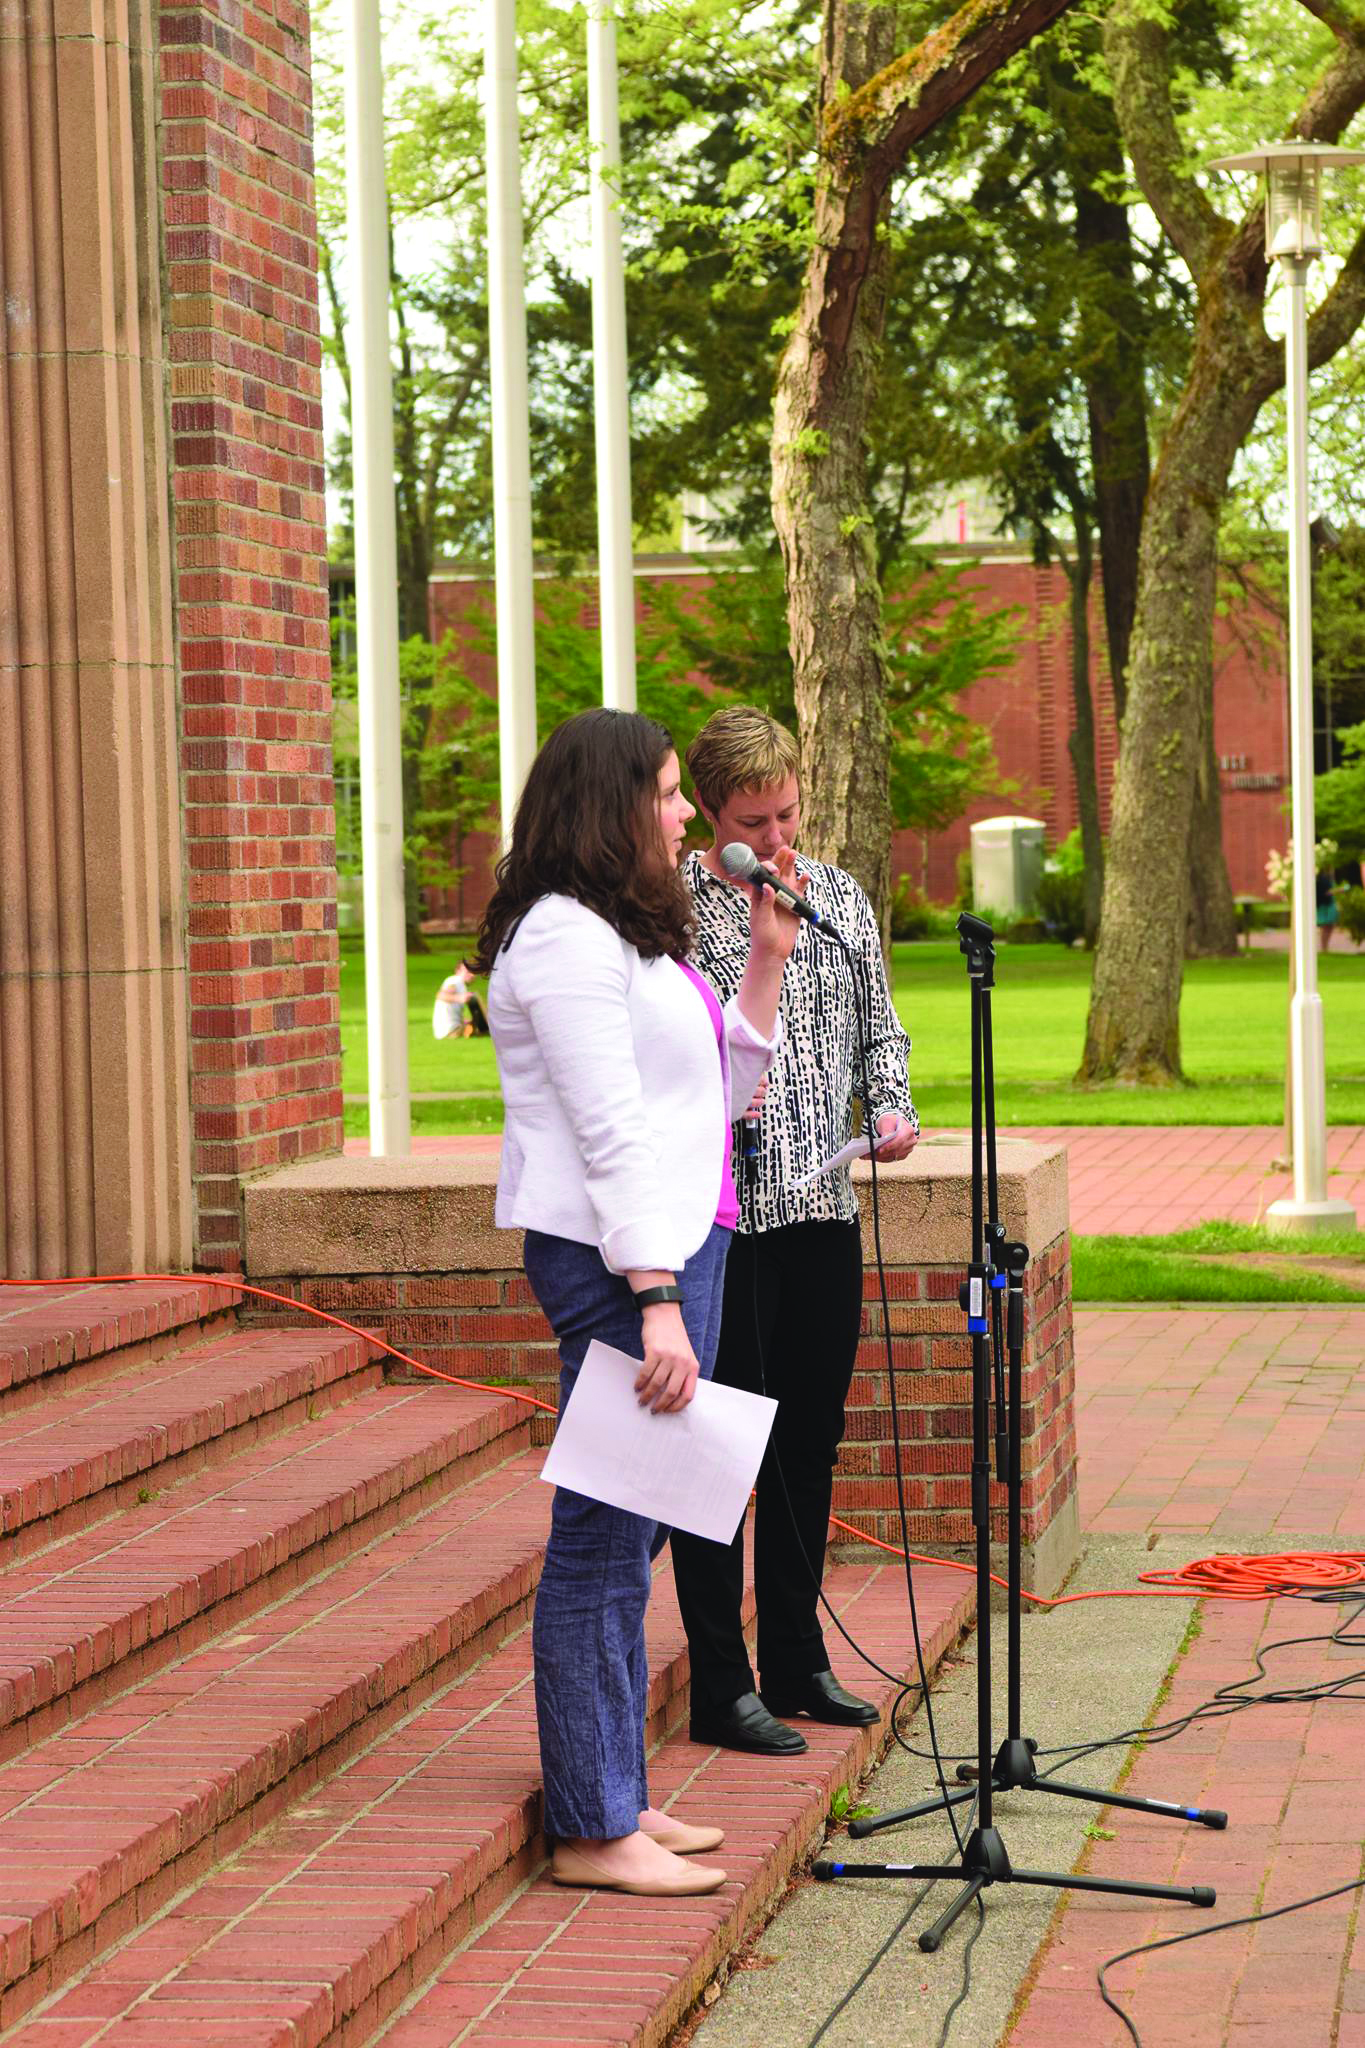 Melissa Williams (left) and Jennifer Childres (right) shared stories as they emceed the event.